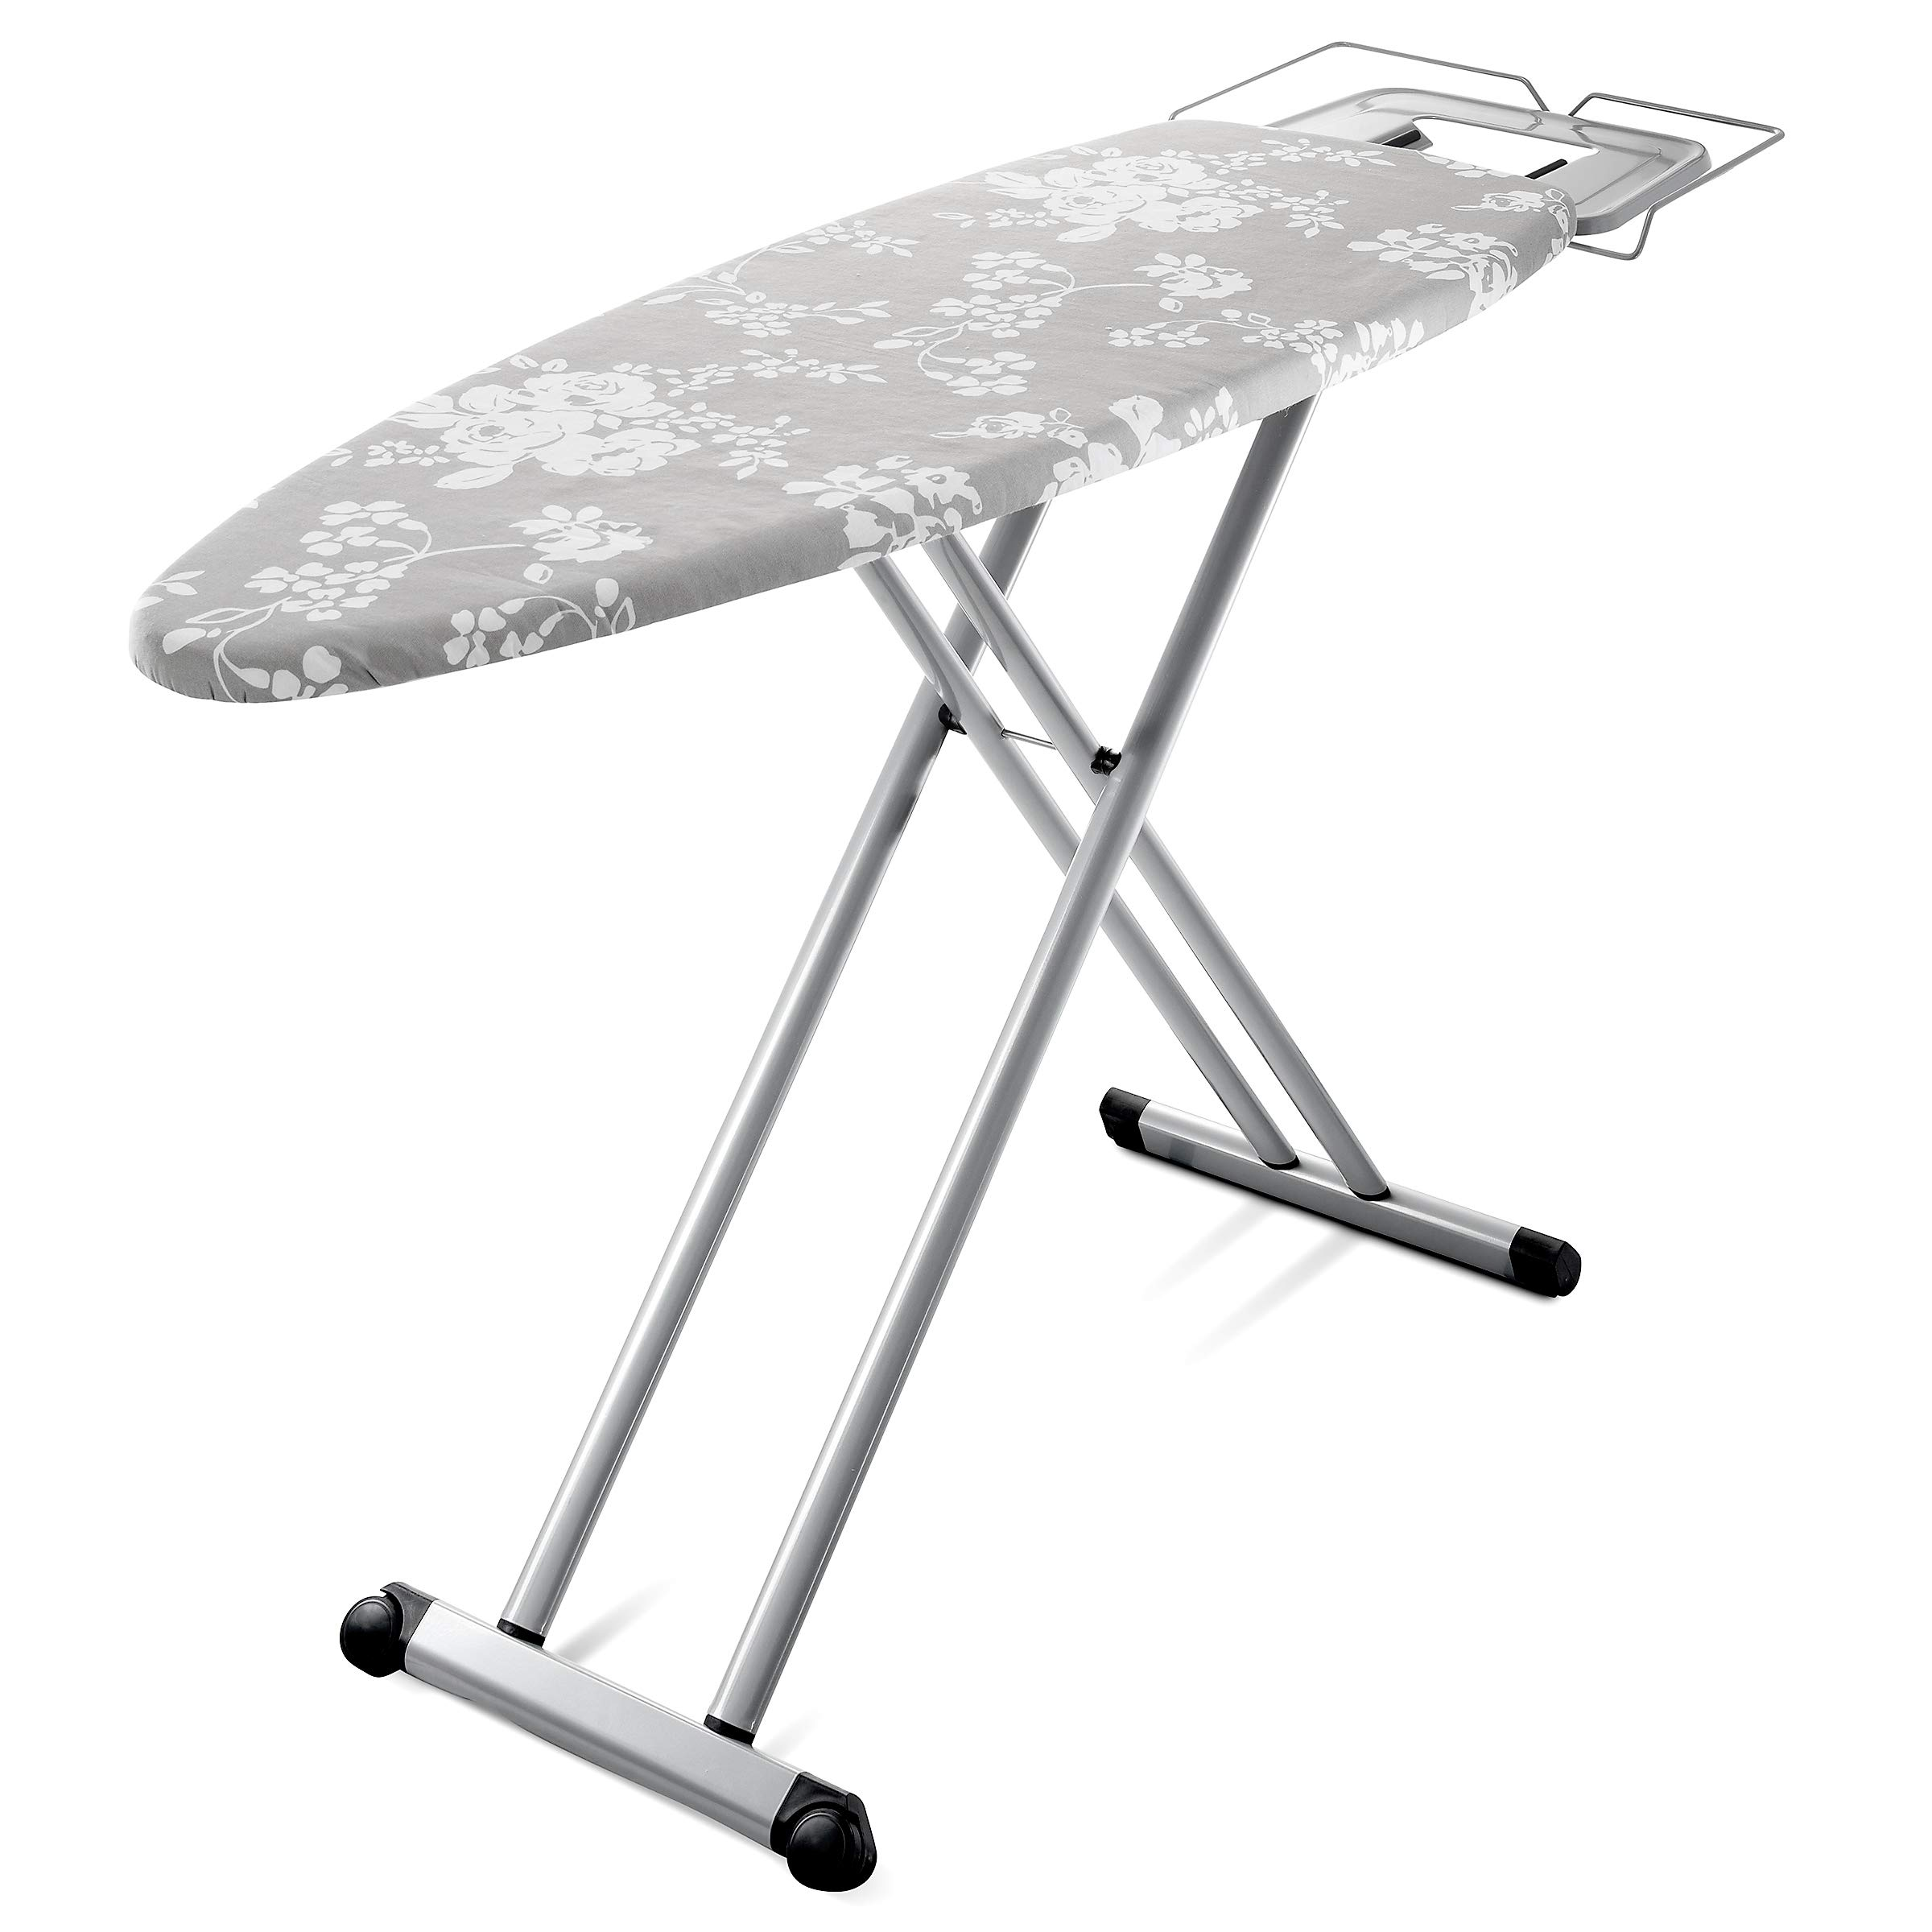 Bartnelli extreem Stability Ironing Board (Gray)